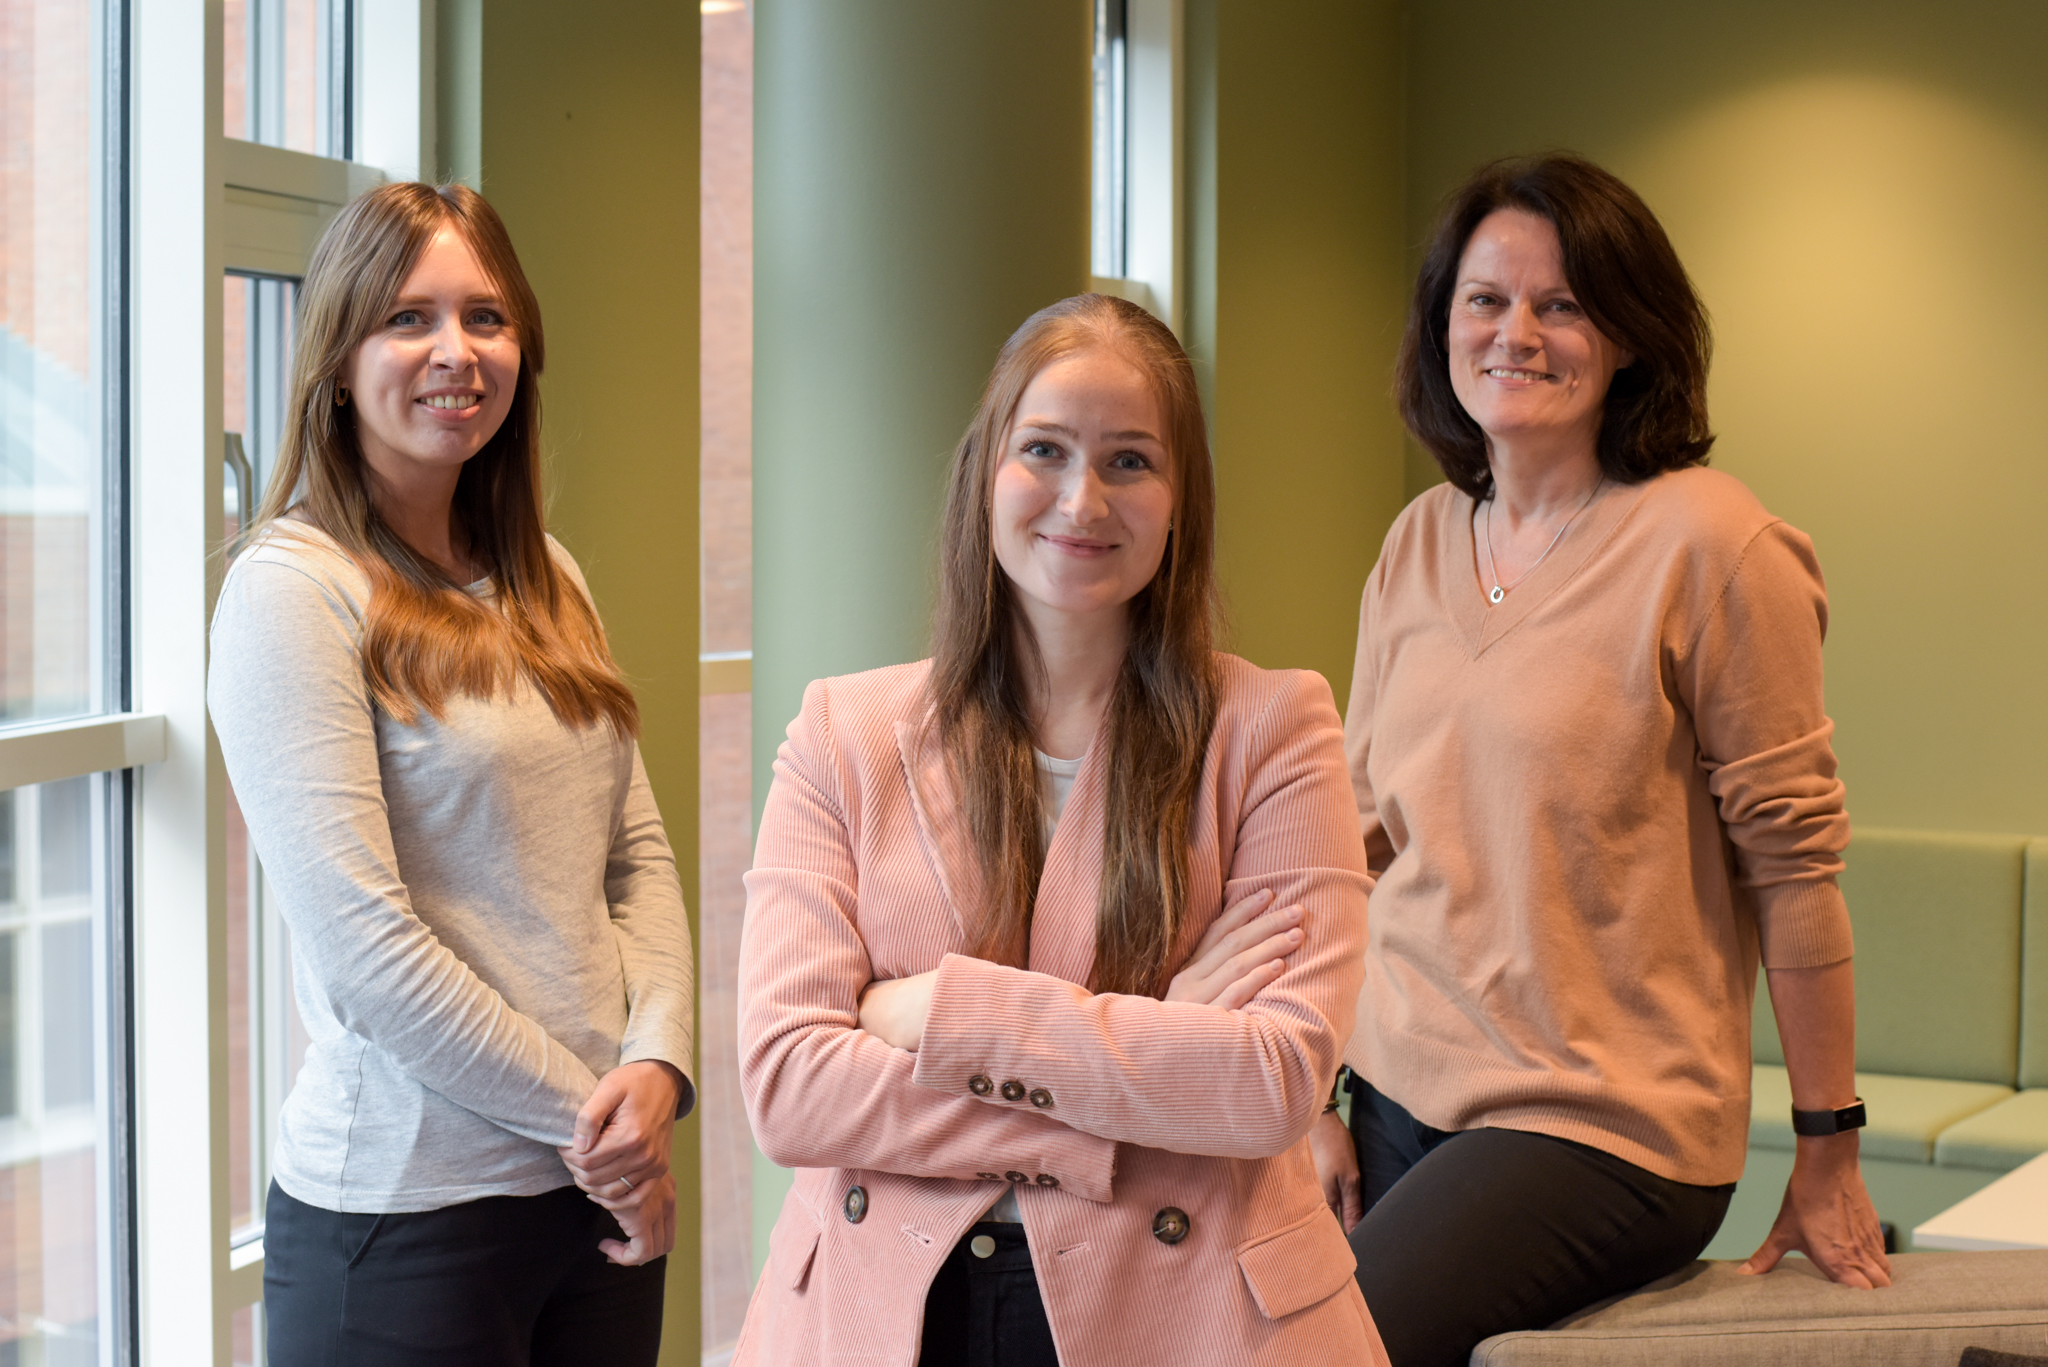 Left to right: Sofia Elamson, Nicki Carnbrand Håkansson, Jun Elin Wiik